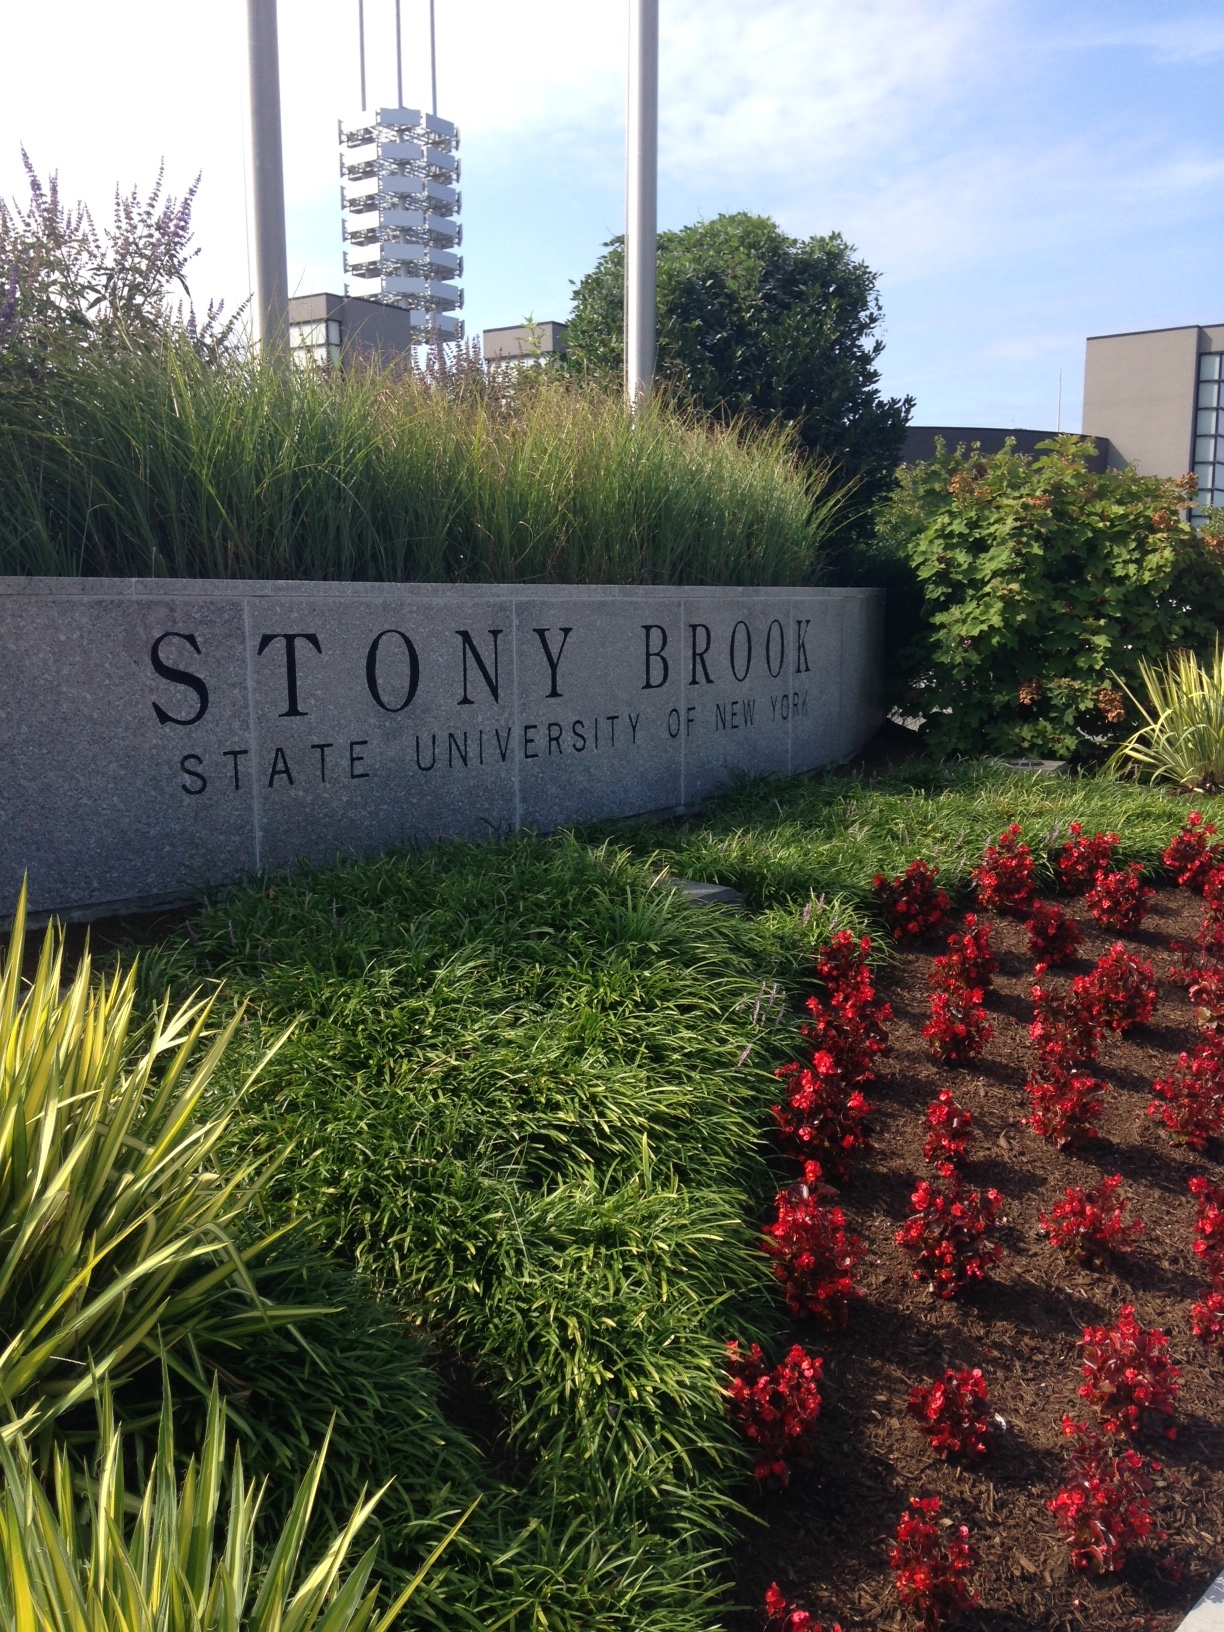 Stony brook university job postings-4388